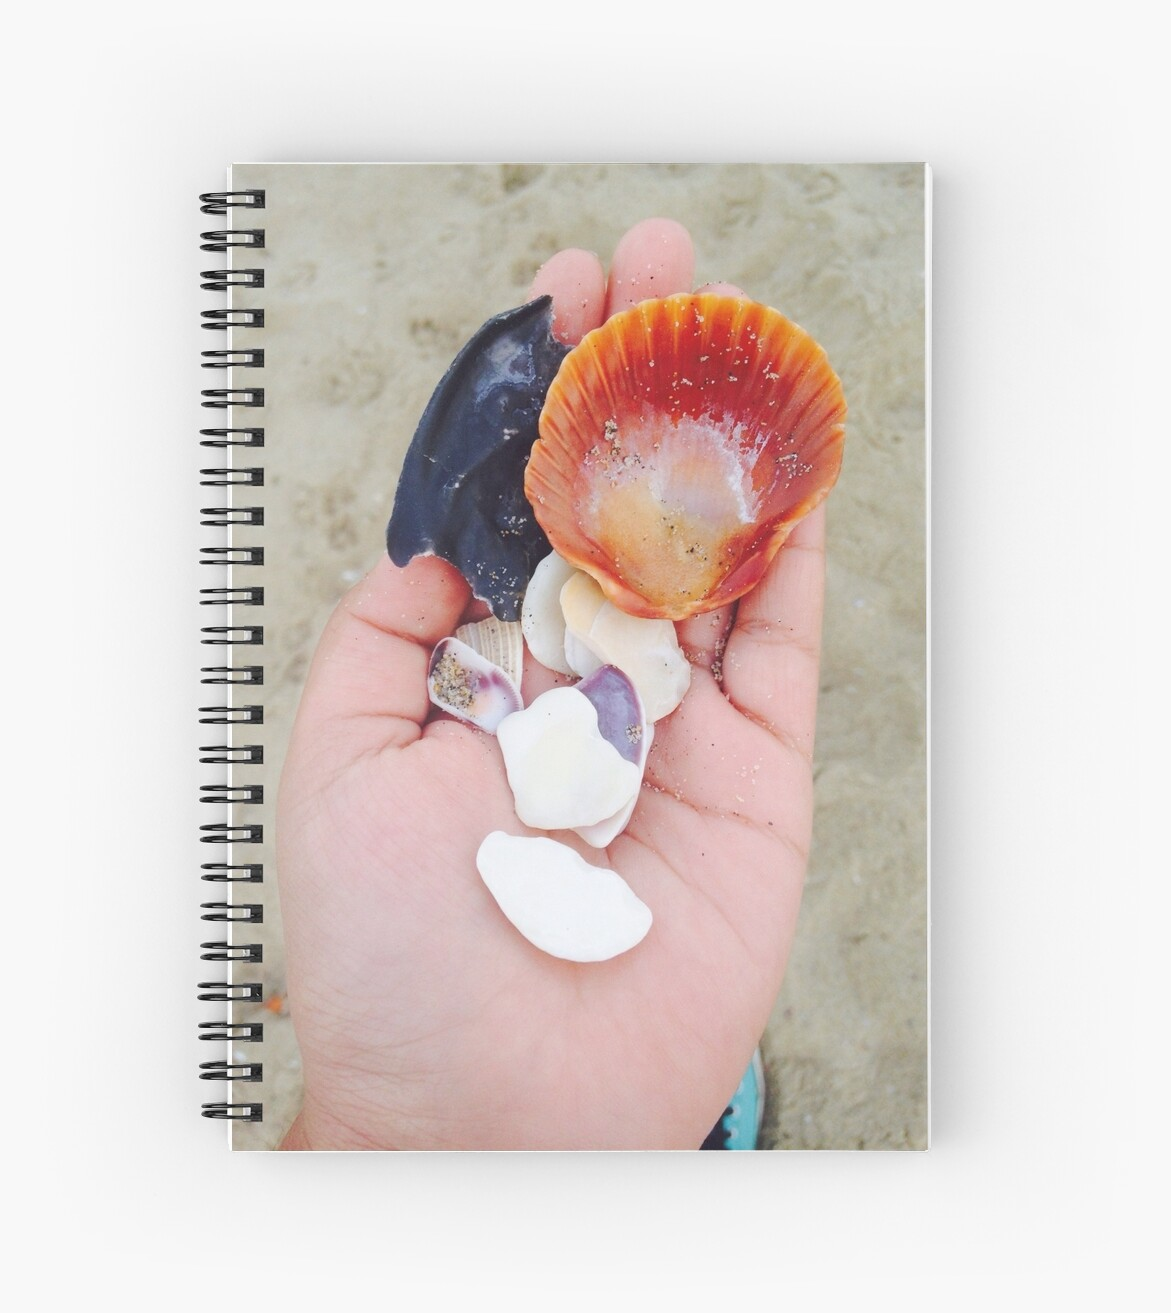 Spiral notebook with sea shells  by Afroditamata